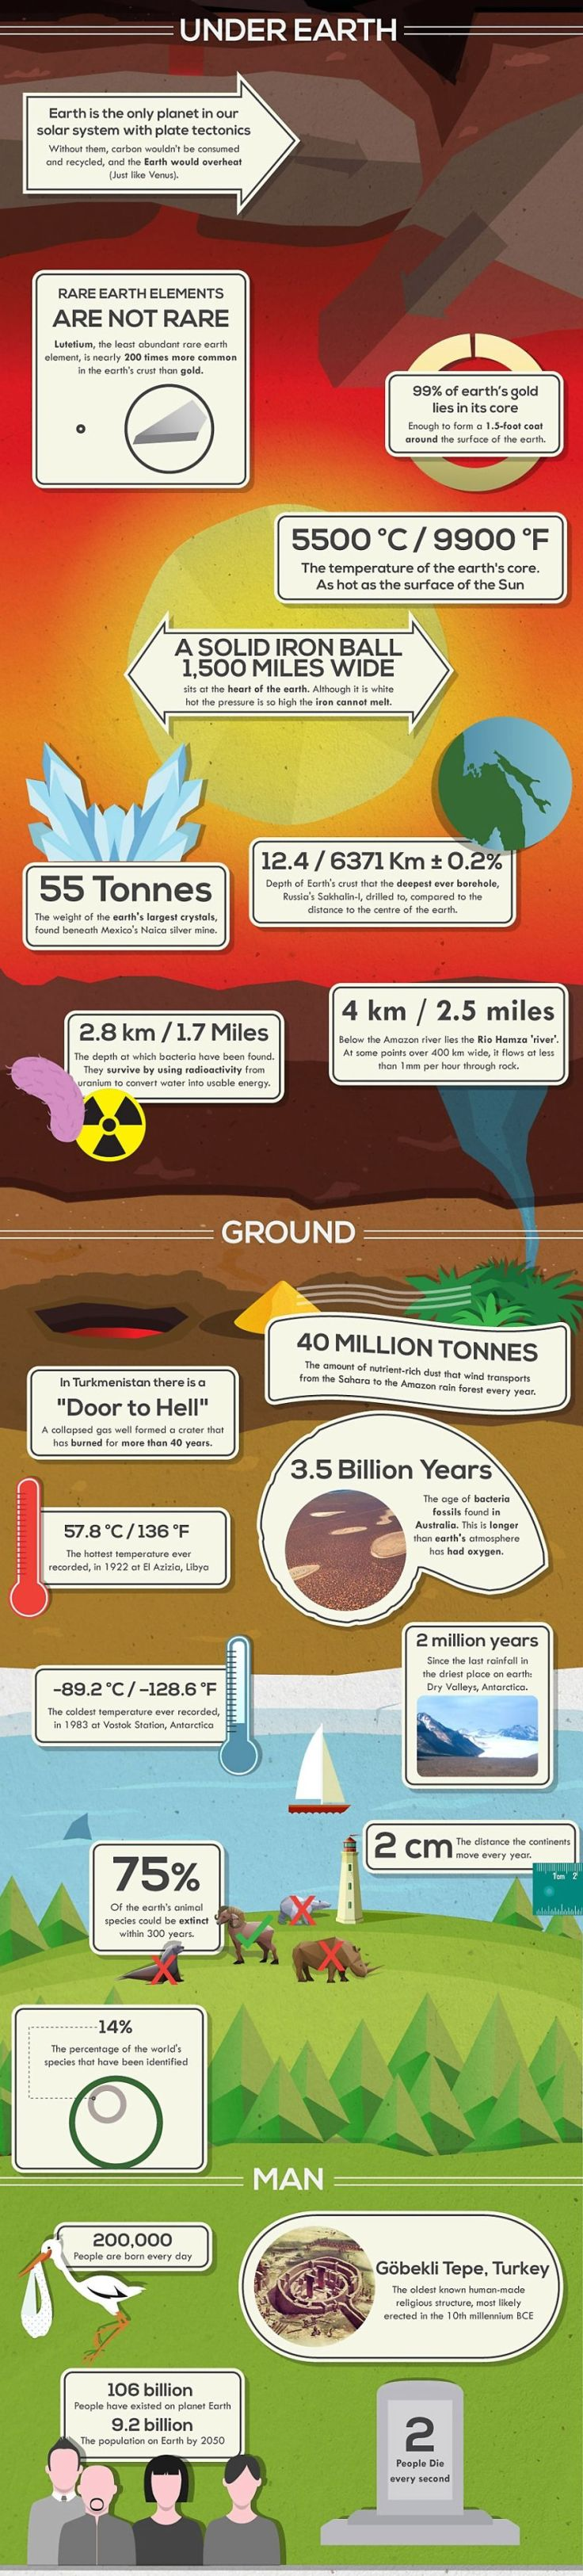 50-Shocking-Facts-You-Probably-Didnt-Know-About-Planet-Earth__880